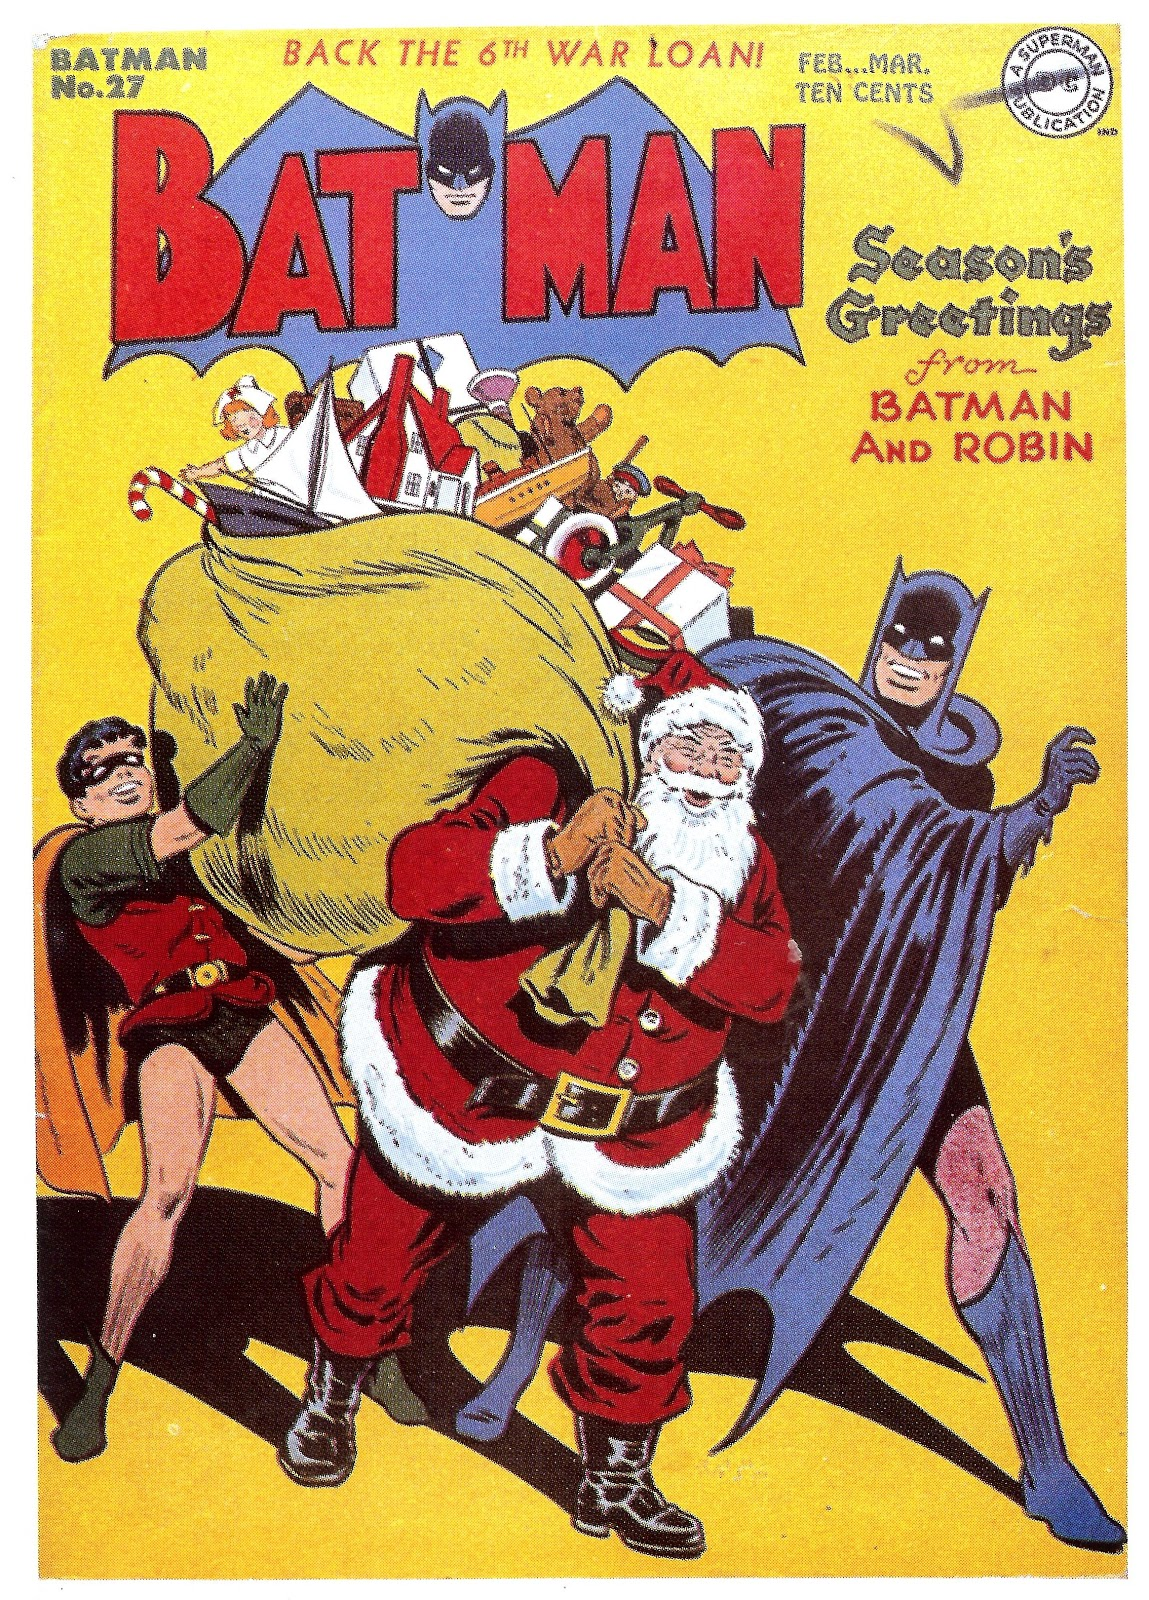 Accelerated Decrepitude: Merry Christmas from Batman!